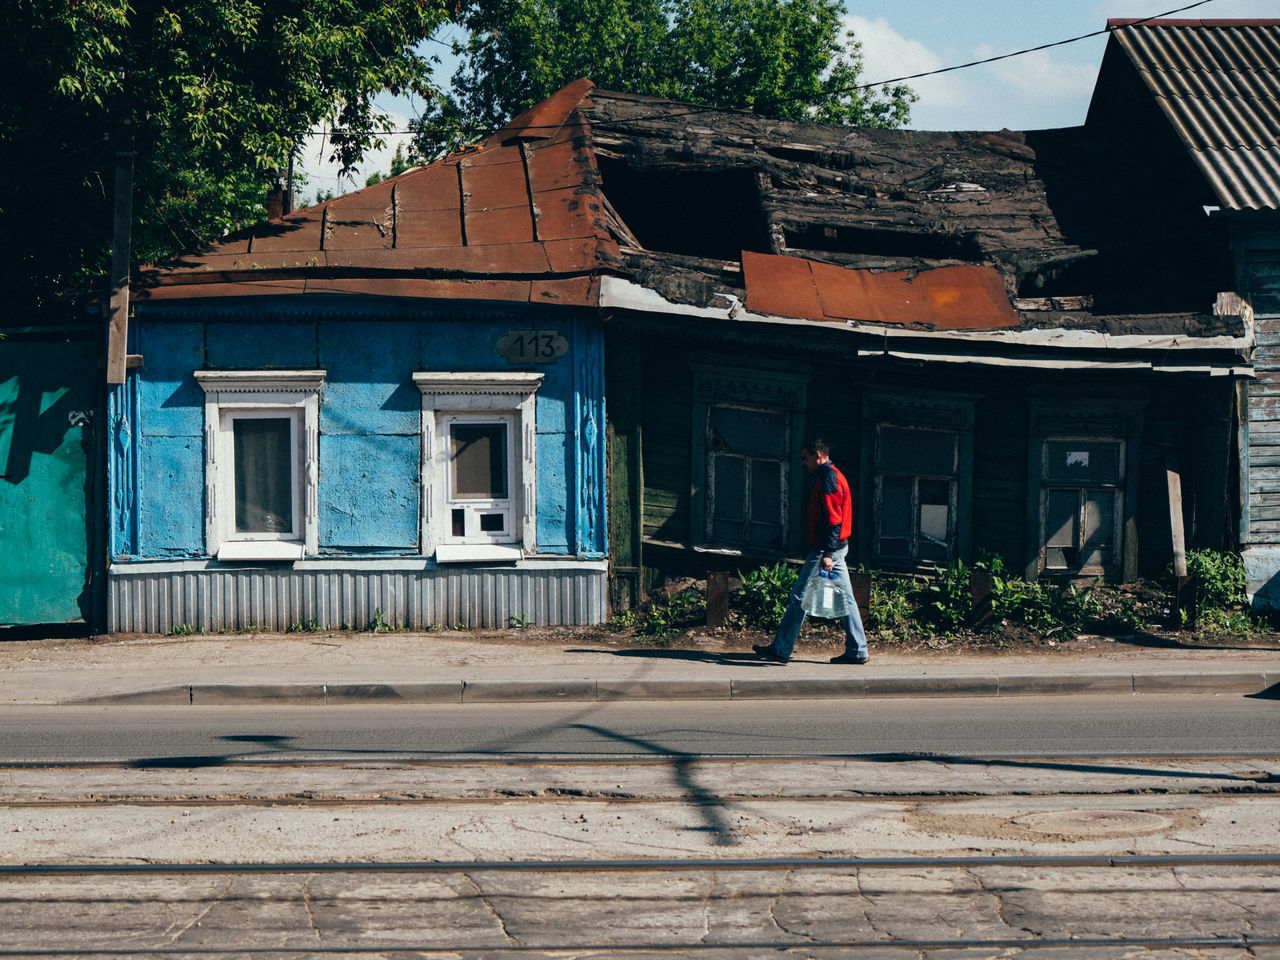 Architecture Building Exterior Built Structure Day Full Length One Person Outdoors Real People Russia Samara Street Photography Streetphotography Walking